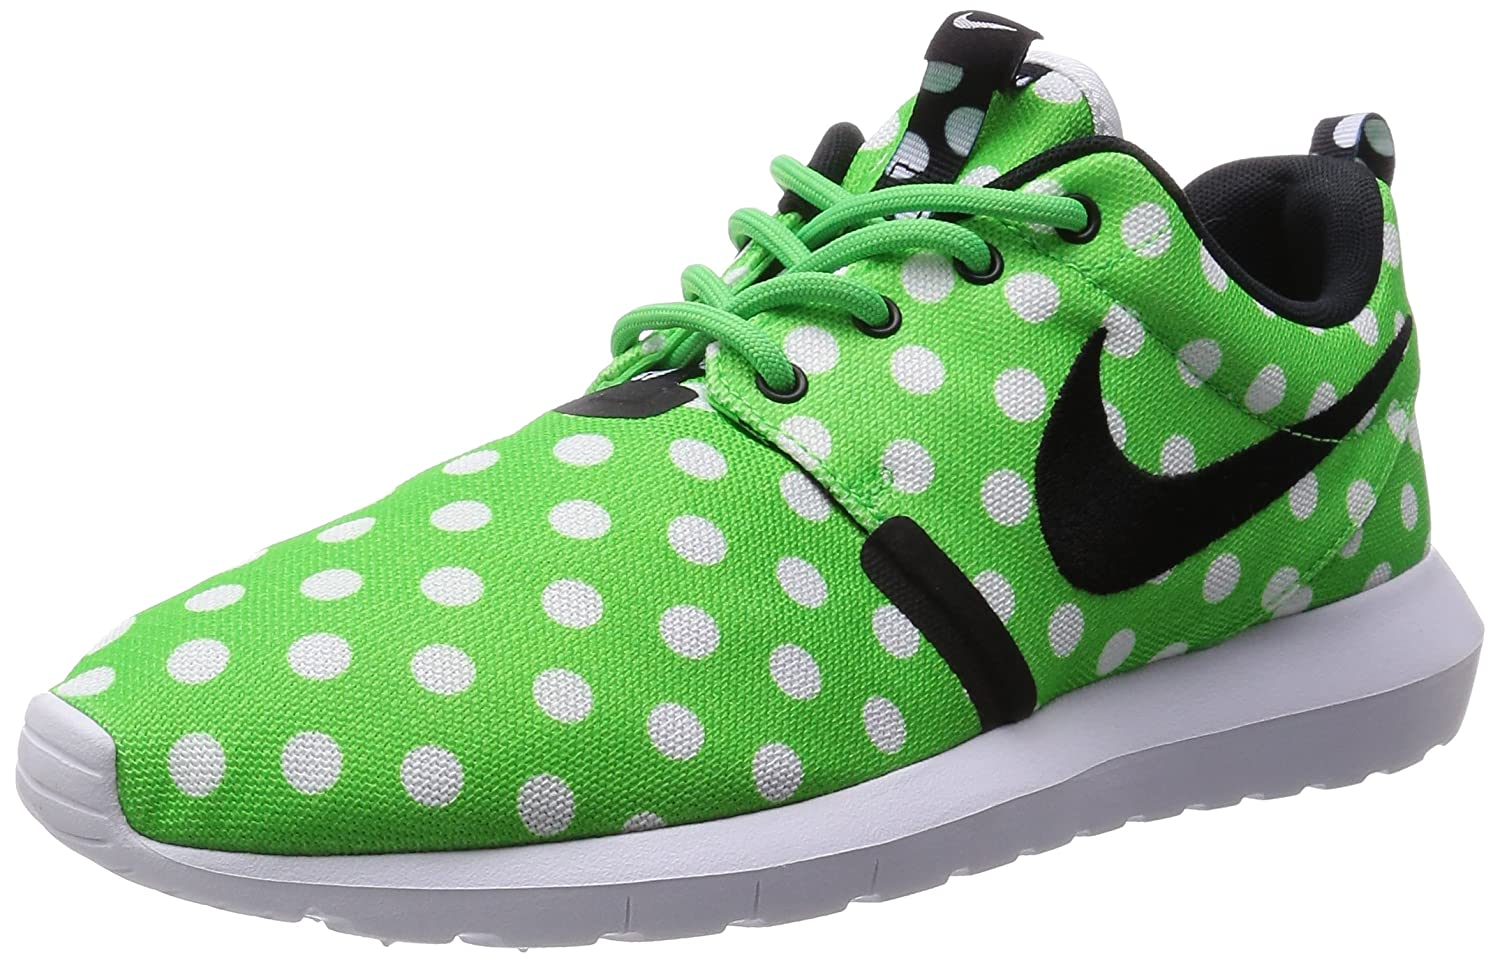 Nike Roshe NM QS, Zapatillas de Running para Hombre 43 EU|Verde / Negro / Blanco (Green Strike / Black-white)